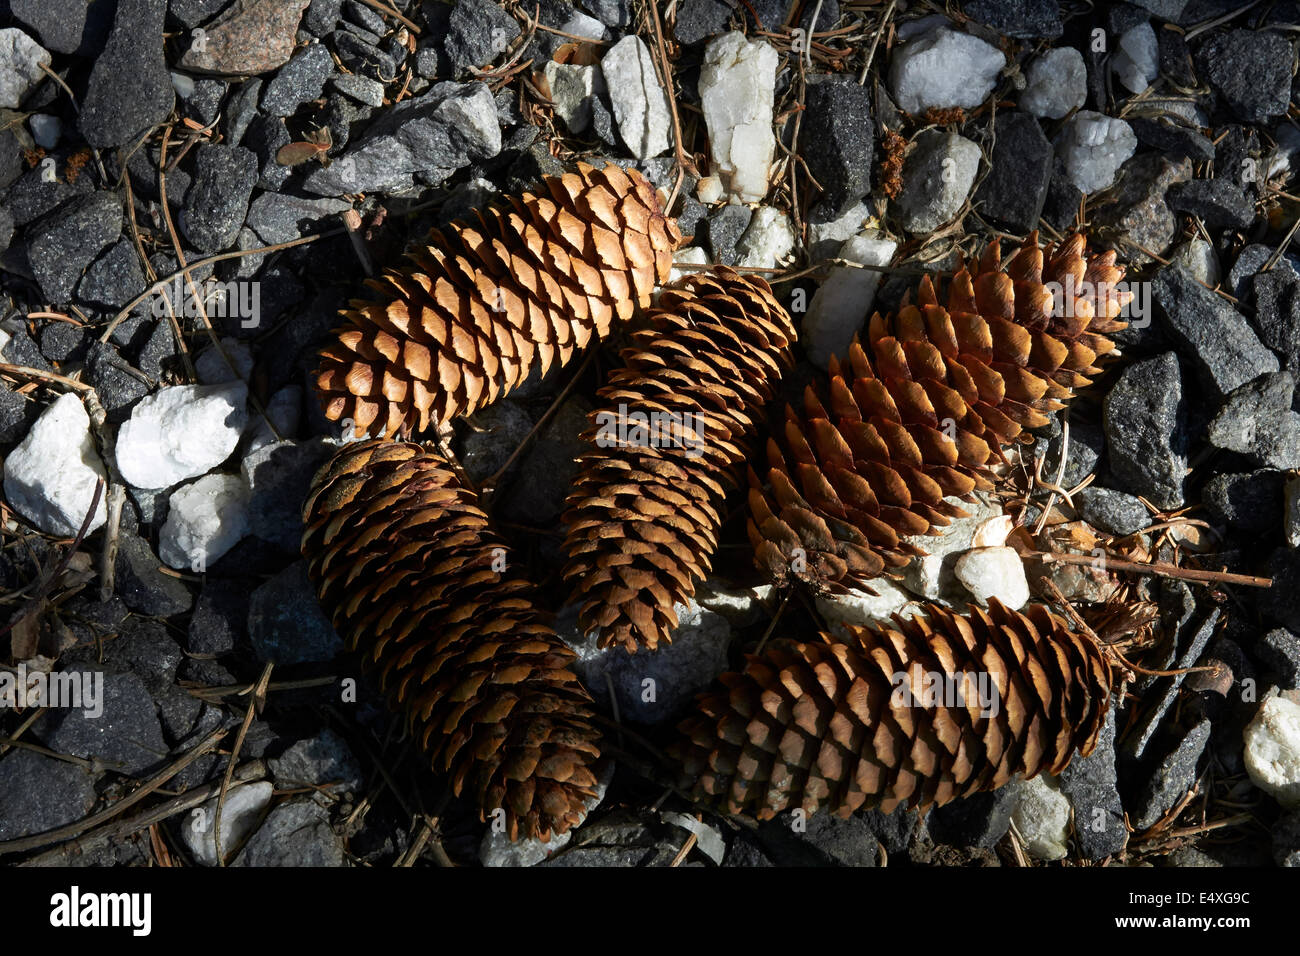 Picea abies, spruce cones on ground - Stock Image